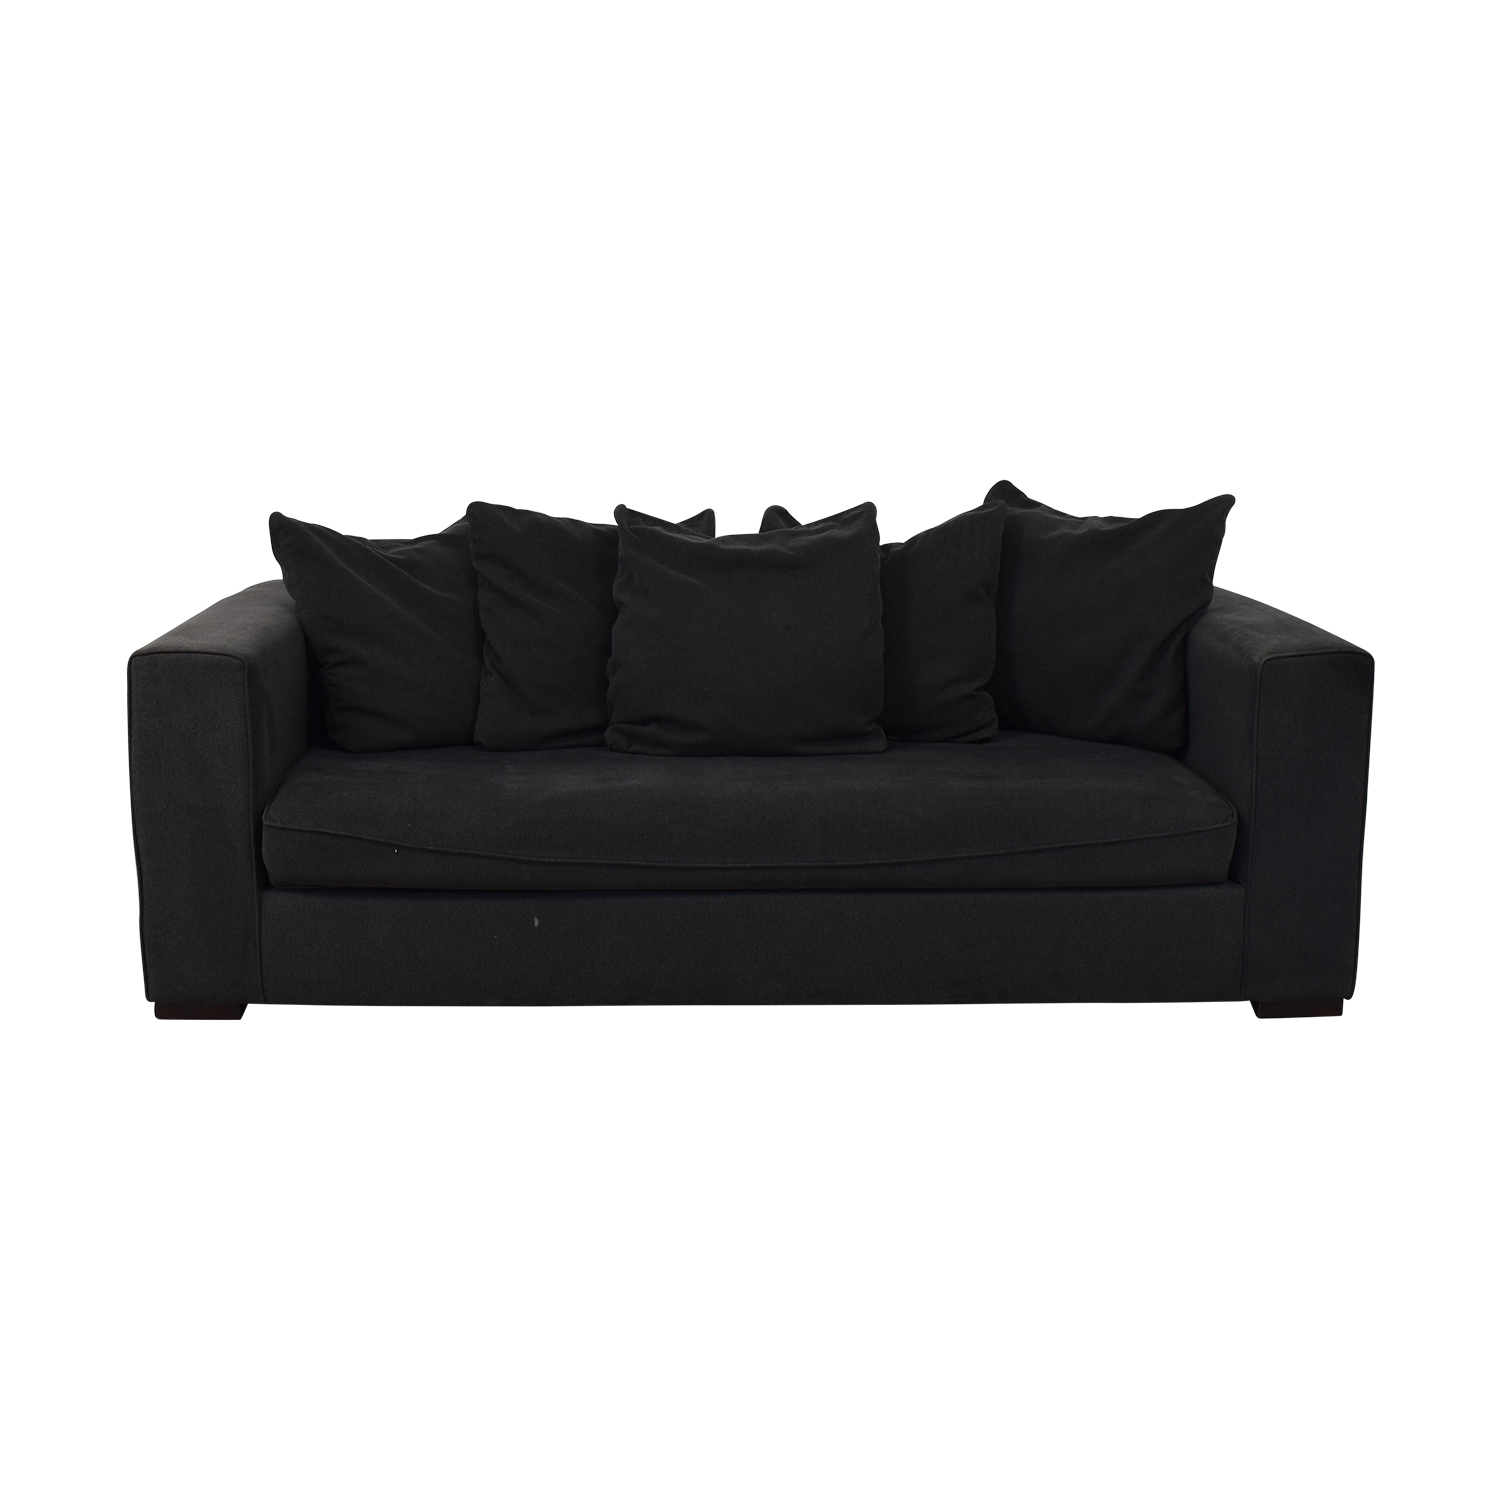 West Elm West Elm Sofa second hand